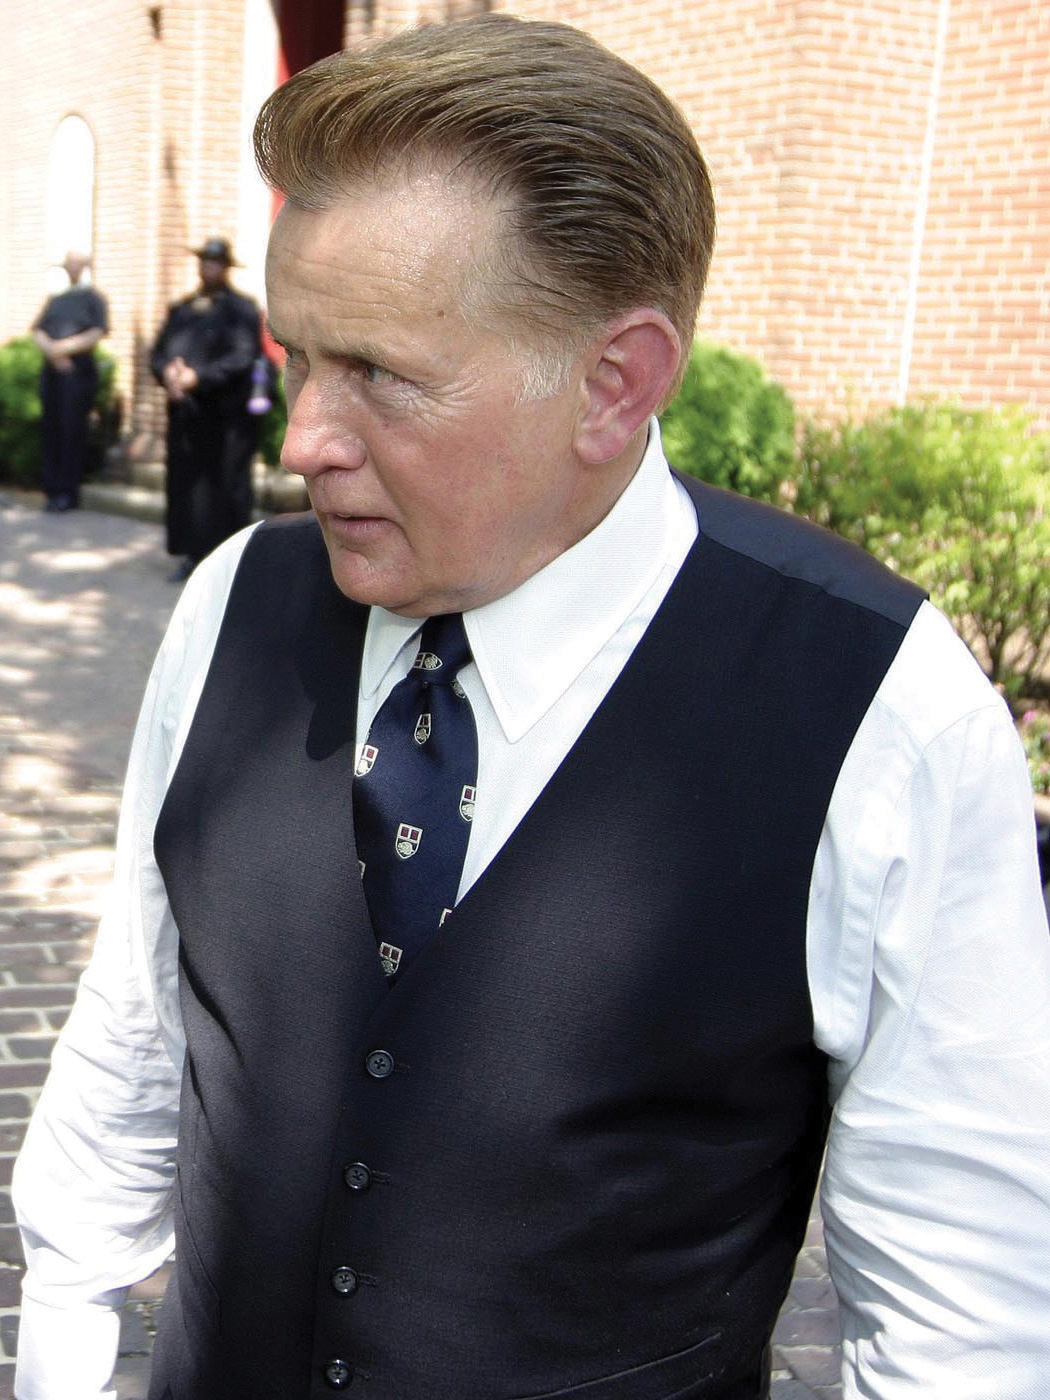 Photo of actor Martin Sheen.